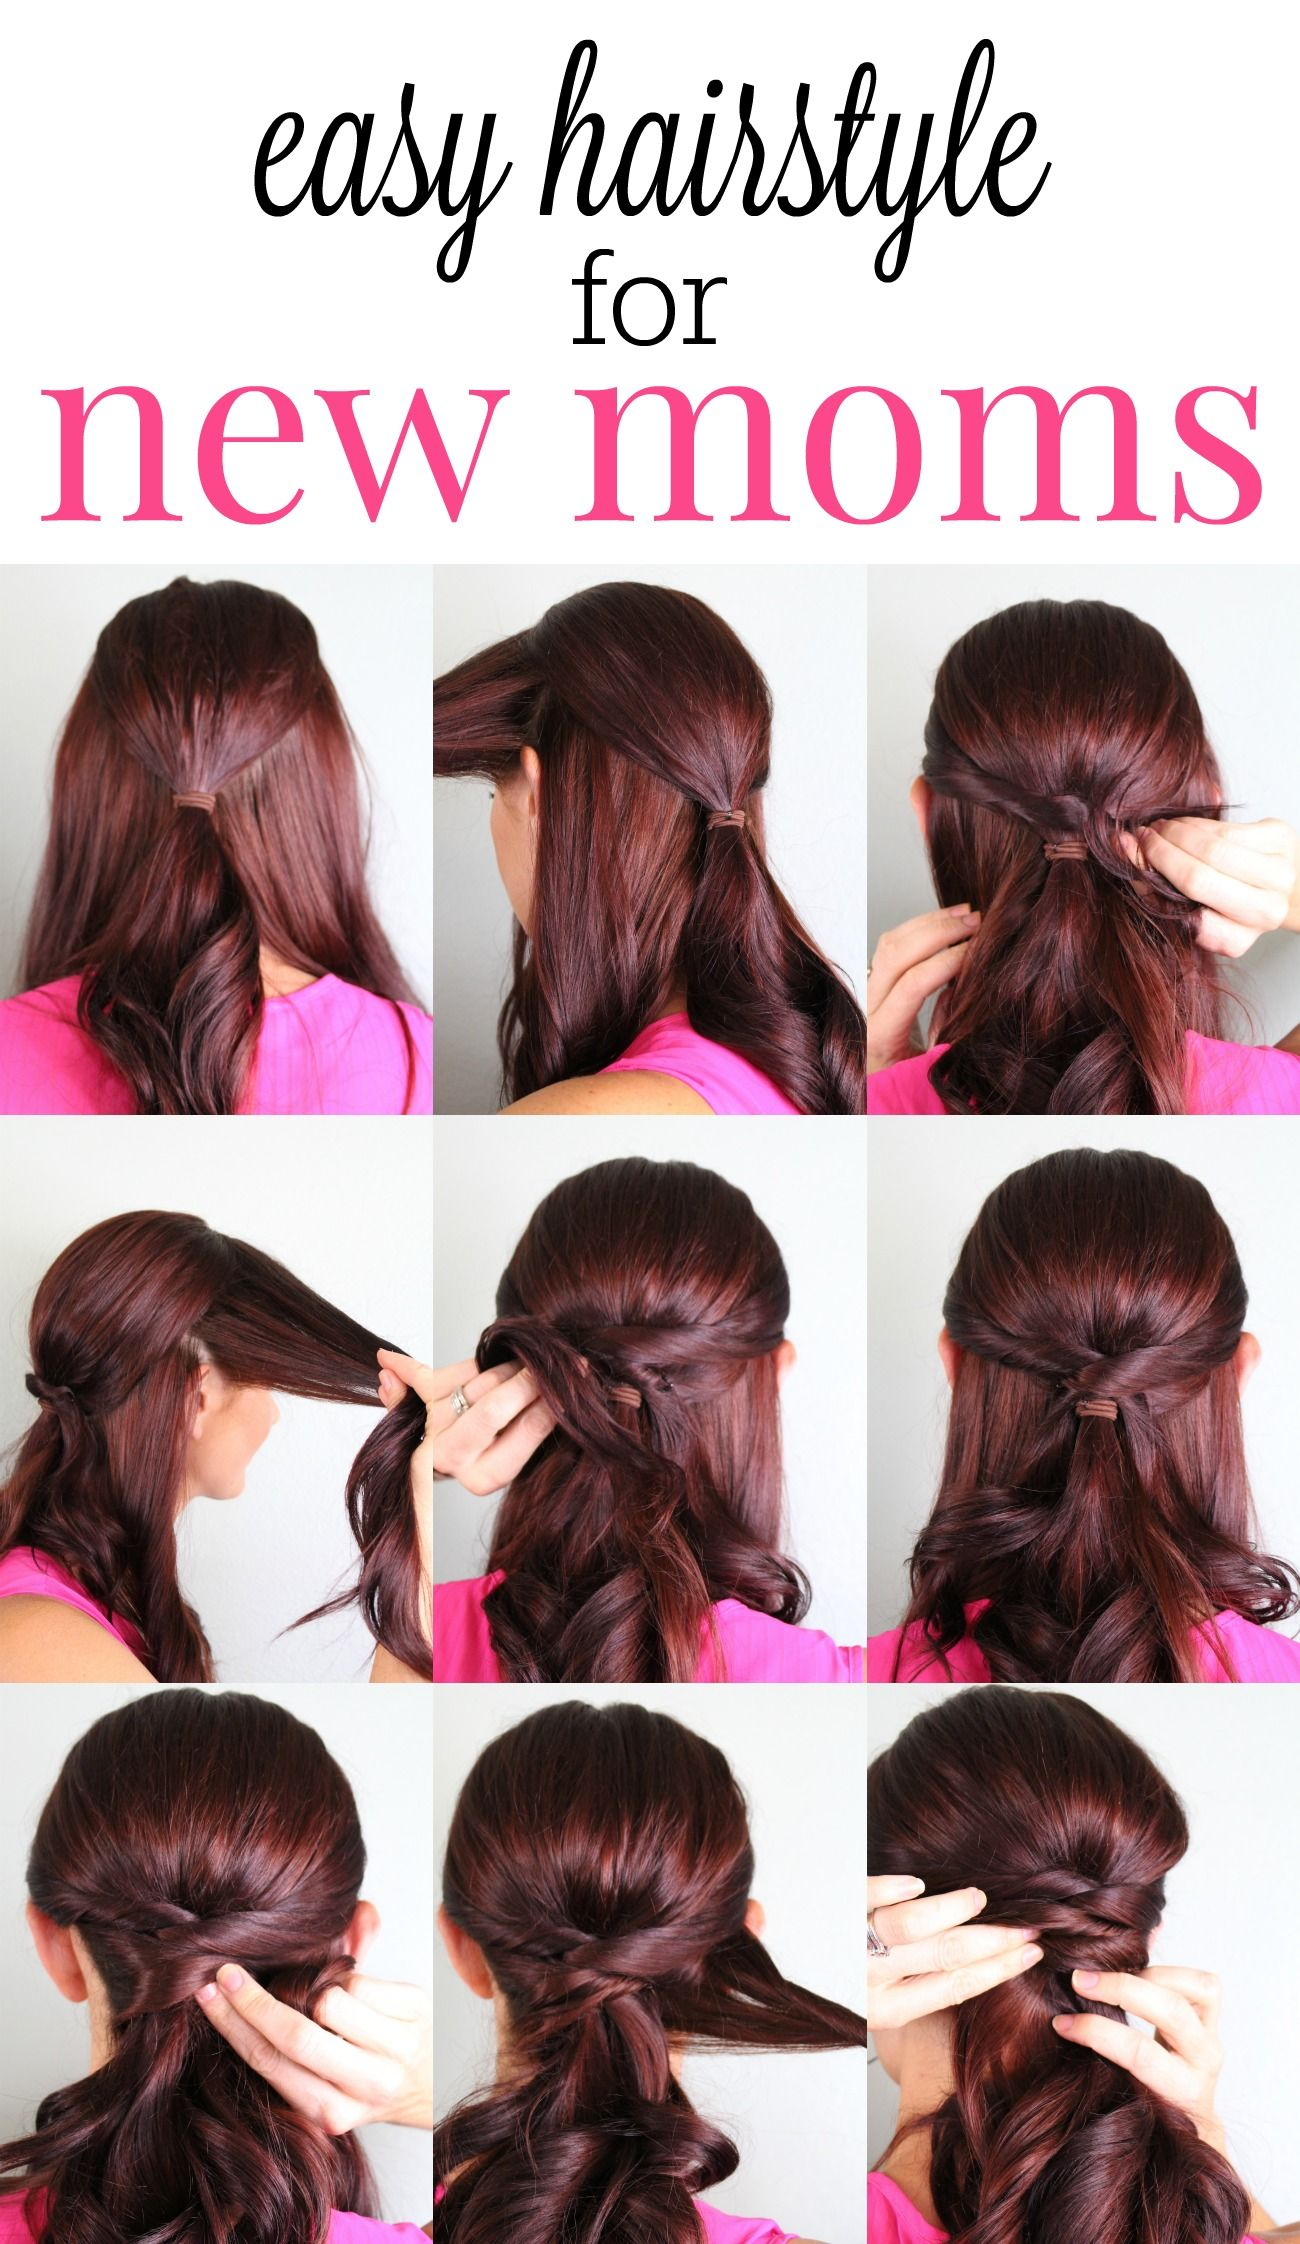 The New Mom How To Hairstyle